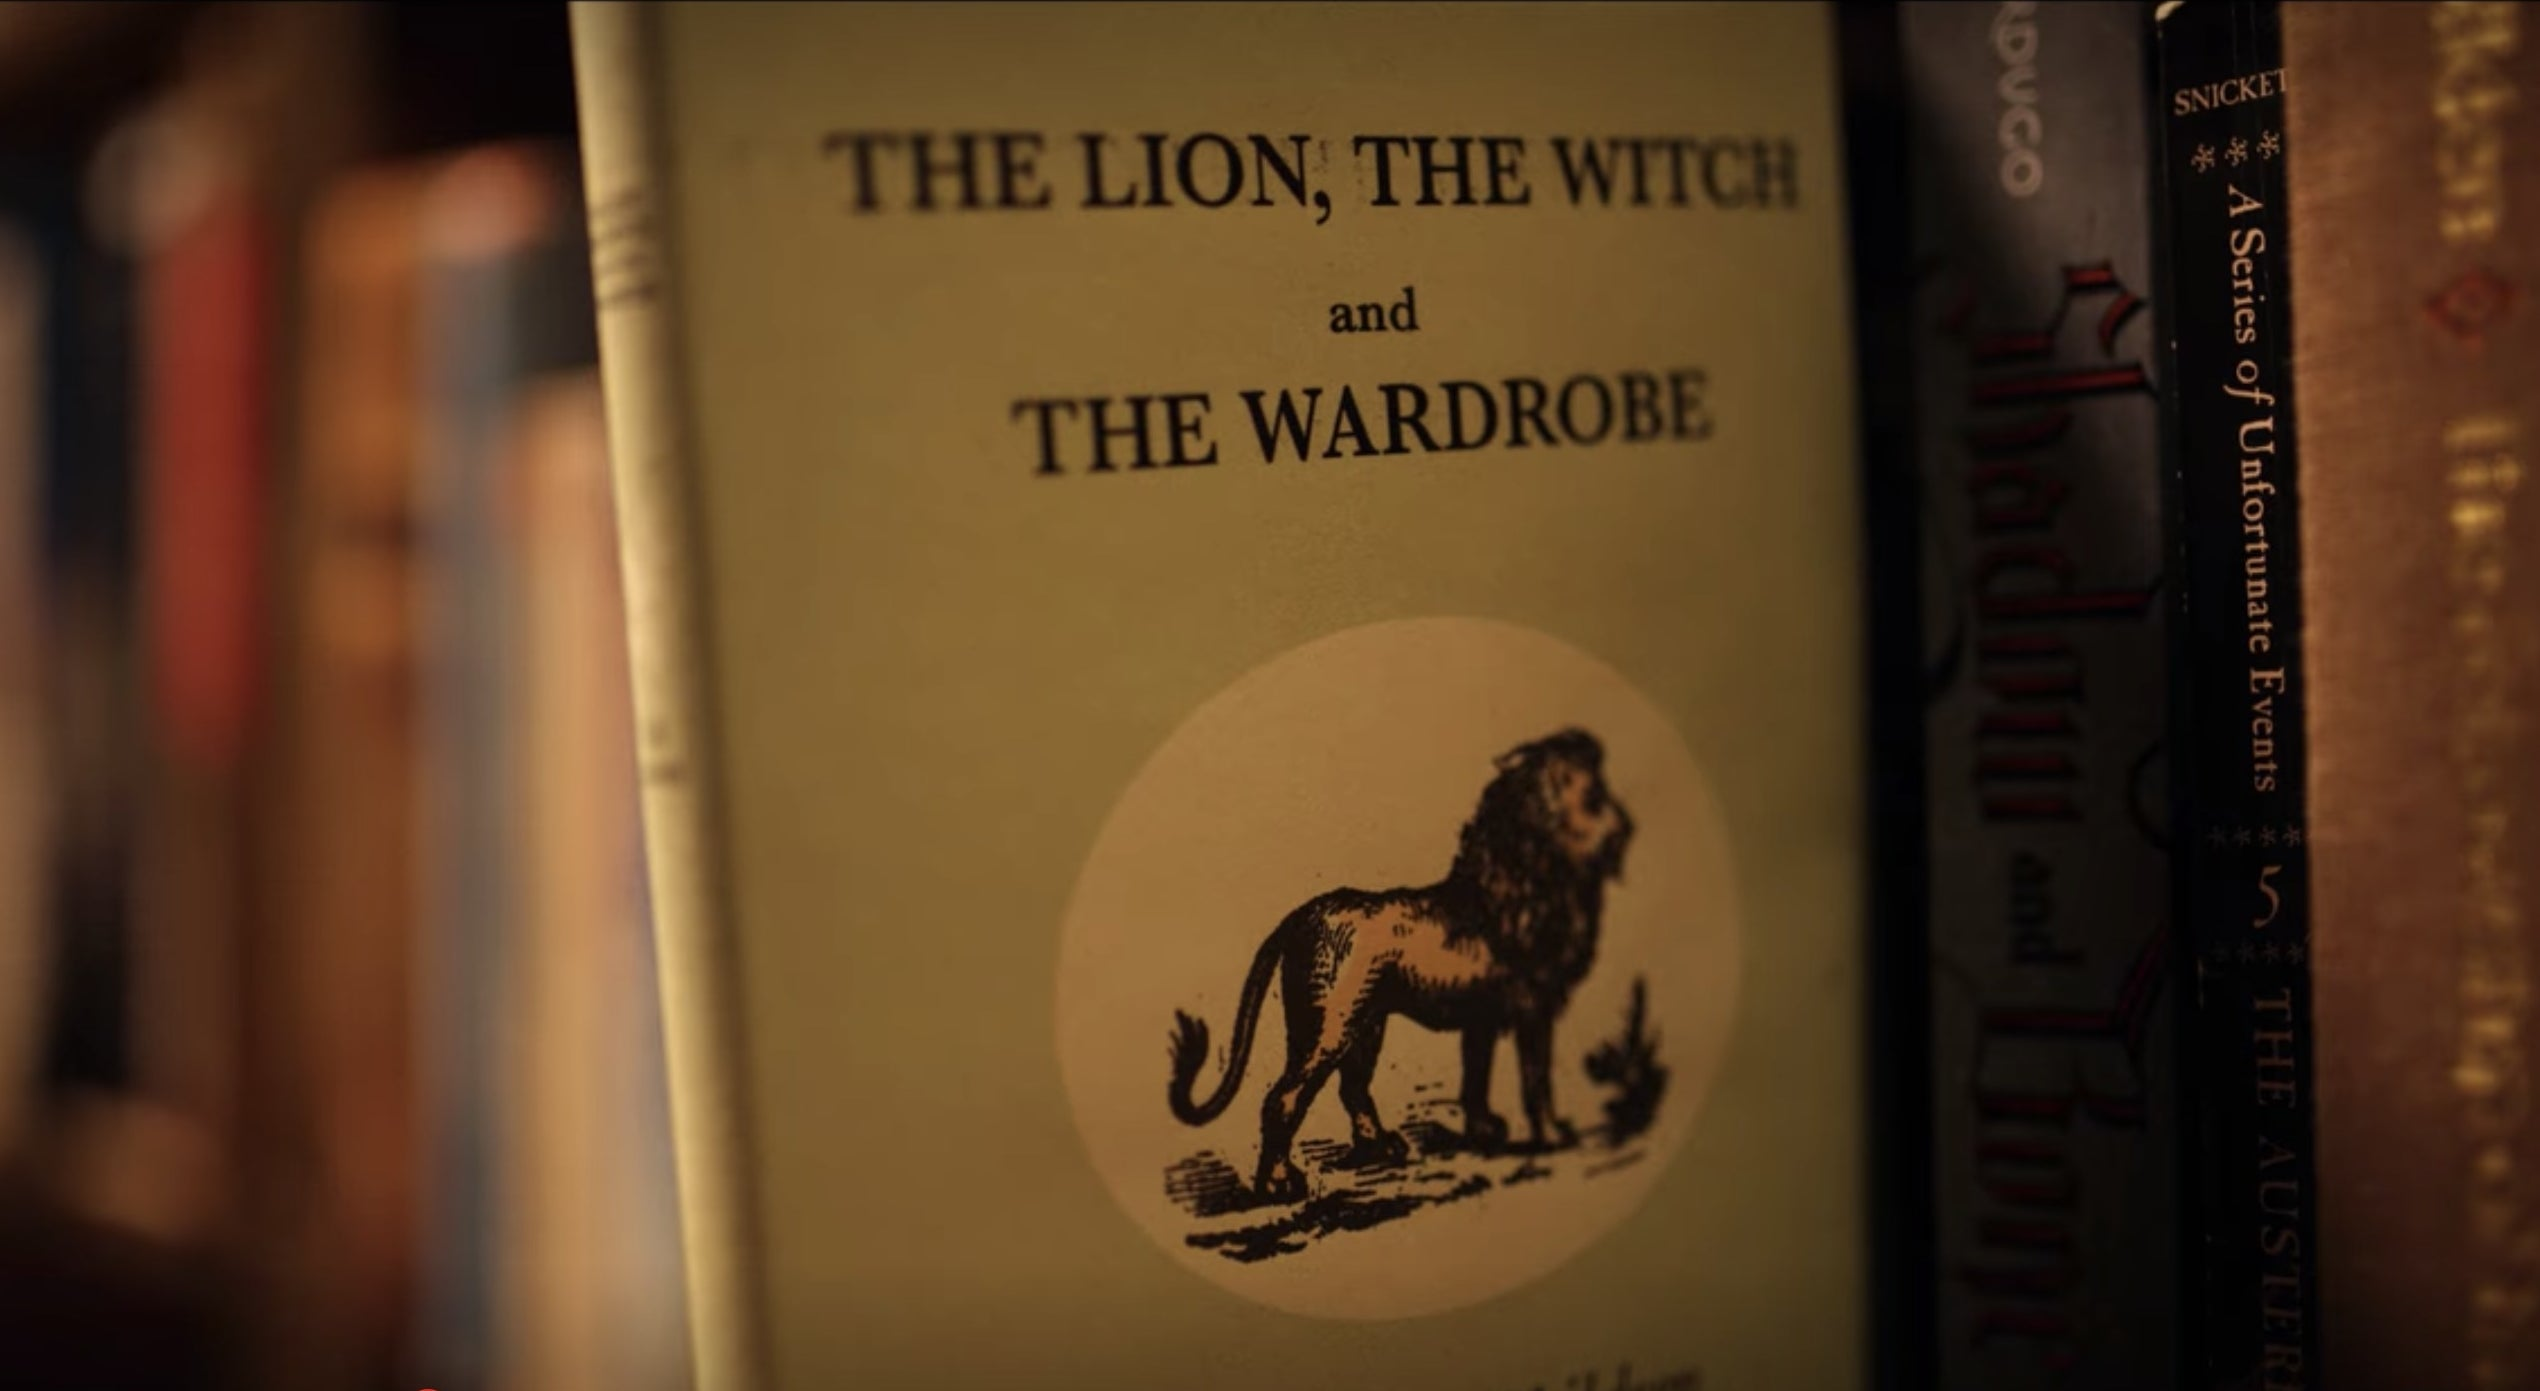 A copy of The Lion, the Witch and the Wardrobe on a shelf